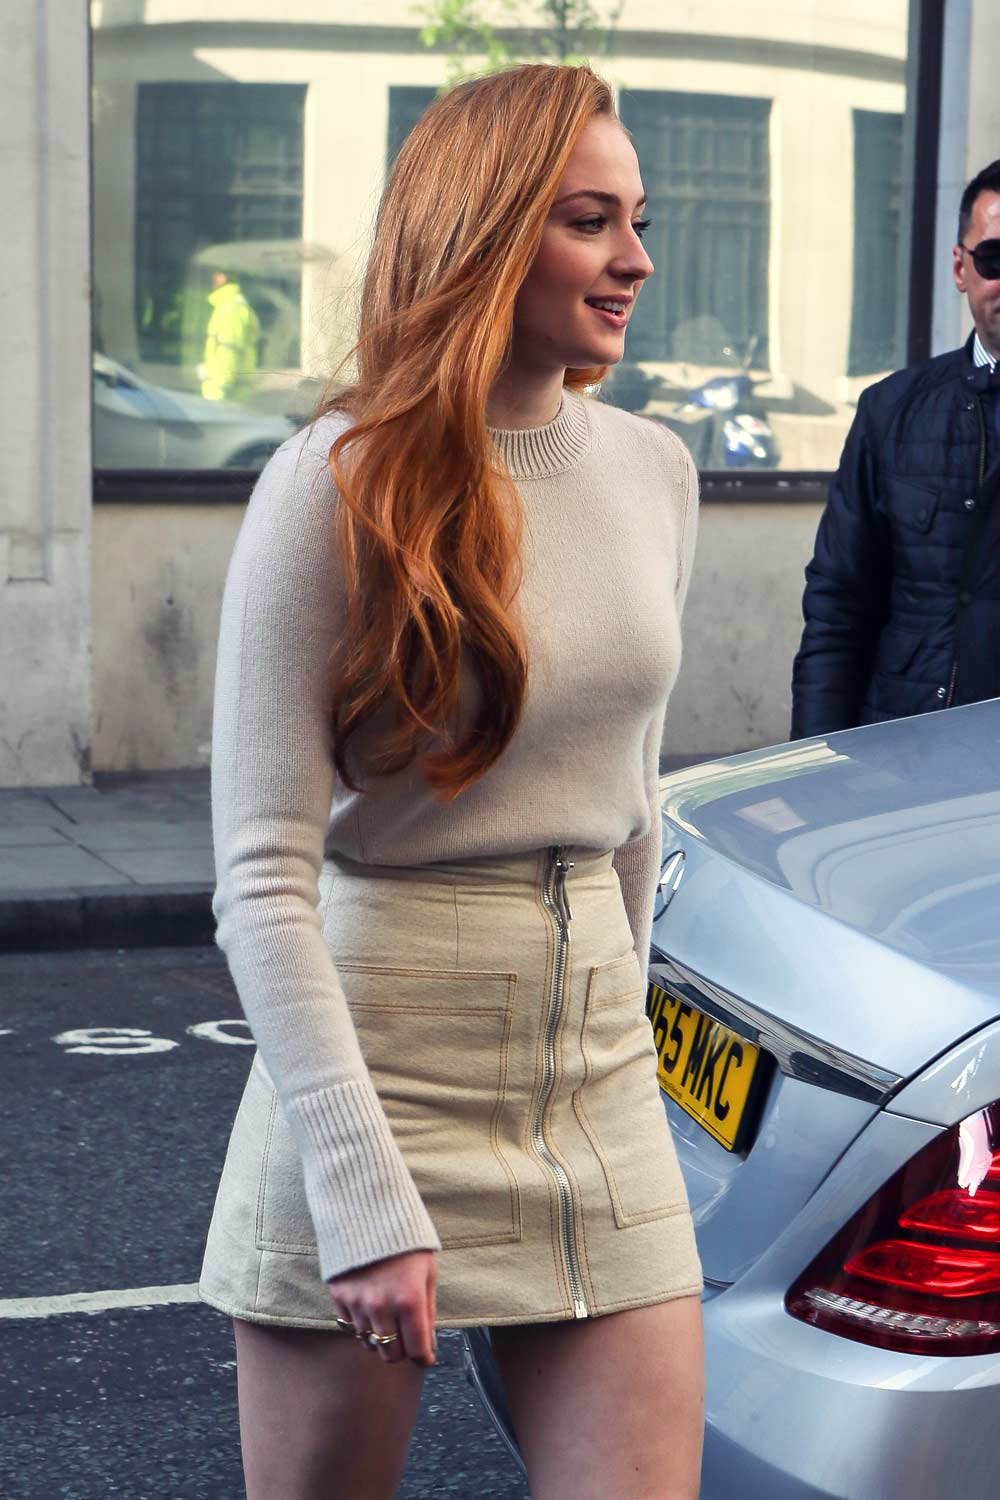 Sophie Turner out and about in London